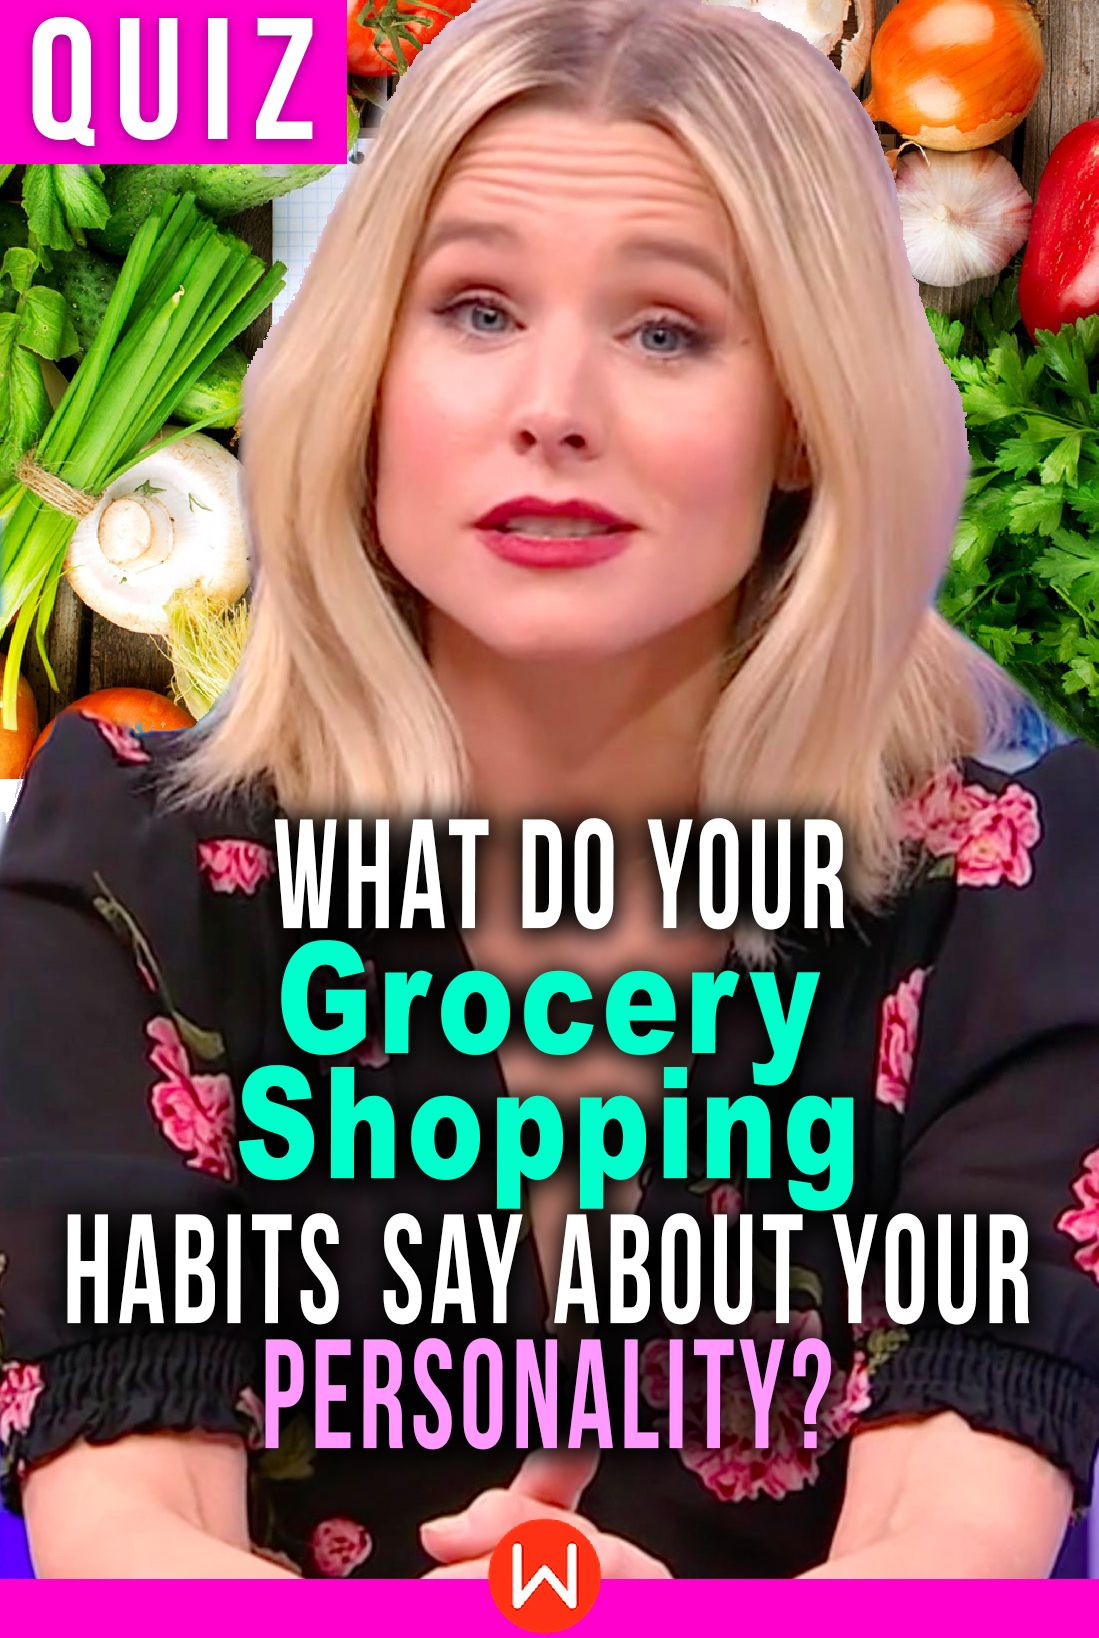 Whats Your Grocery Shopping Personality